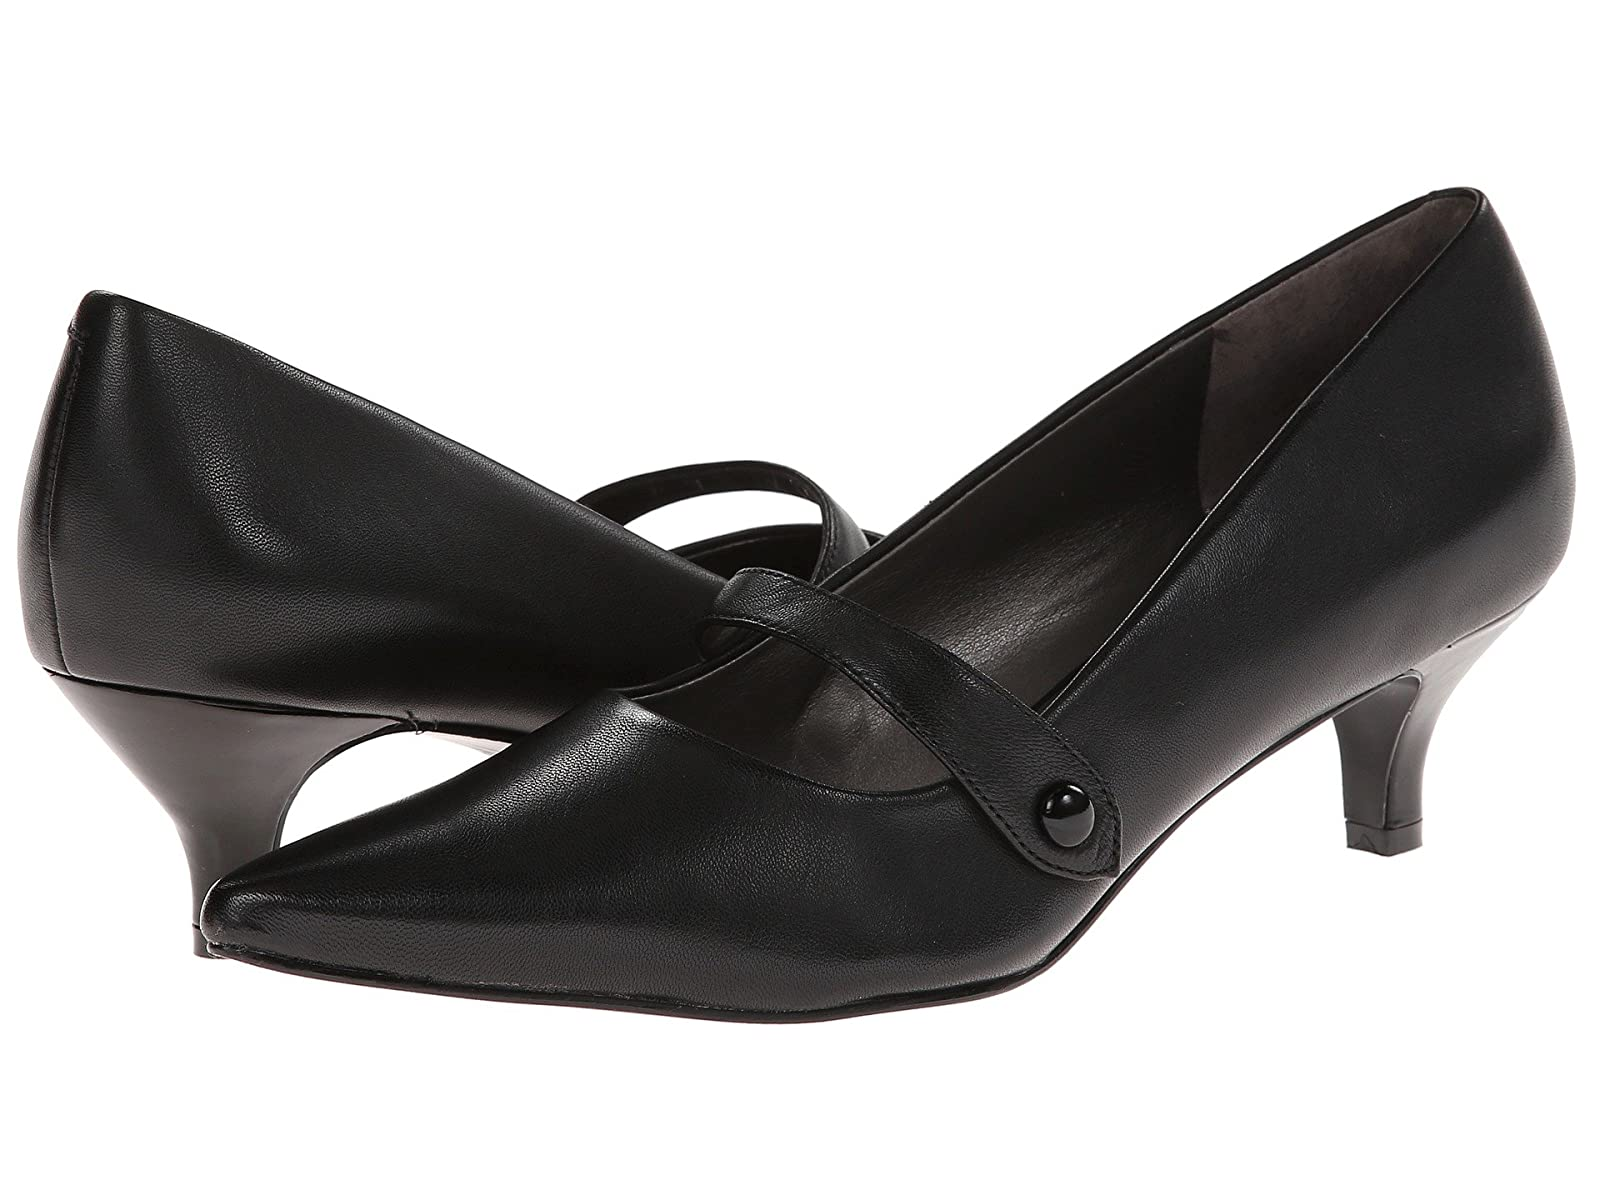 Trotters PetraCheap and distinctive eye-catching shoes